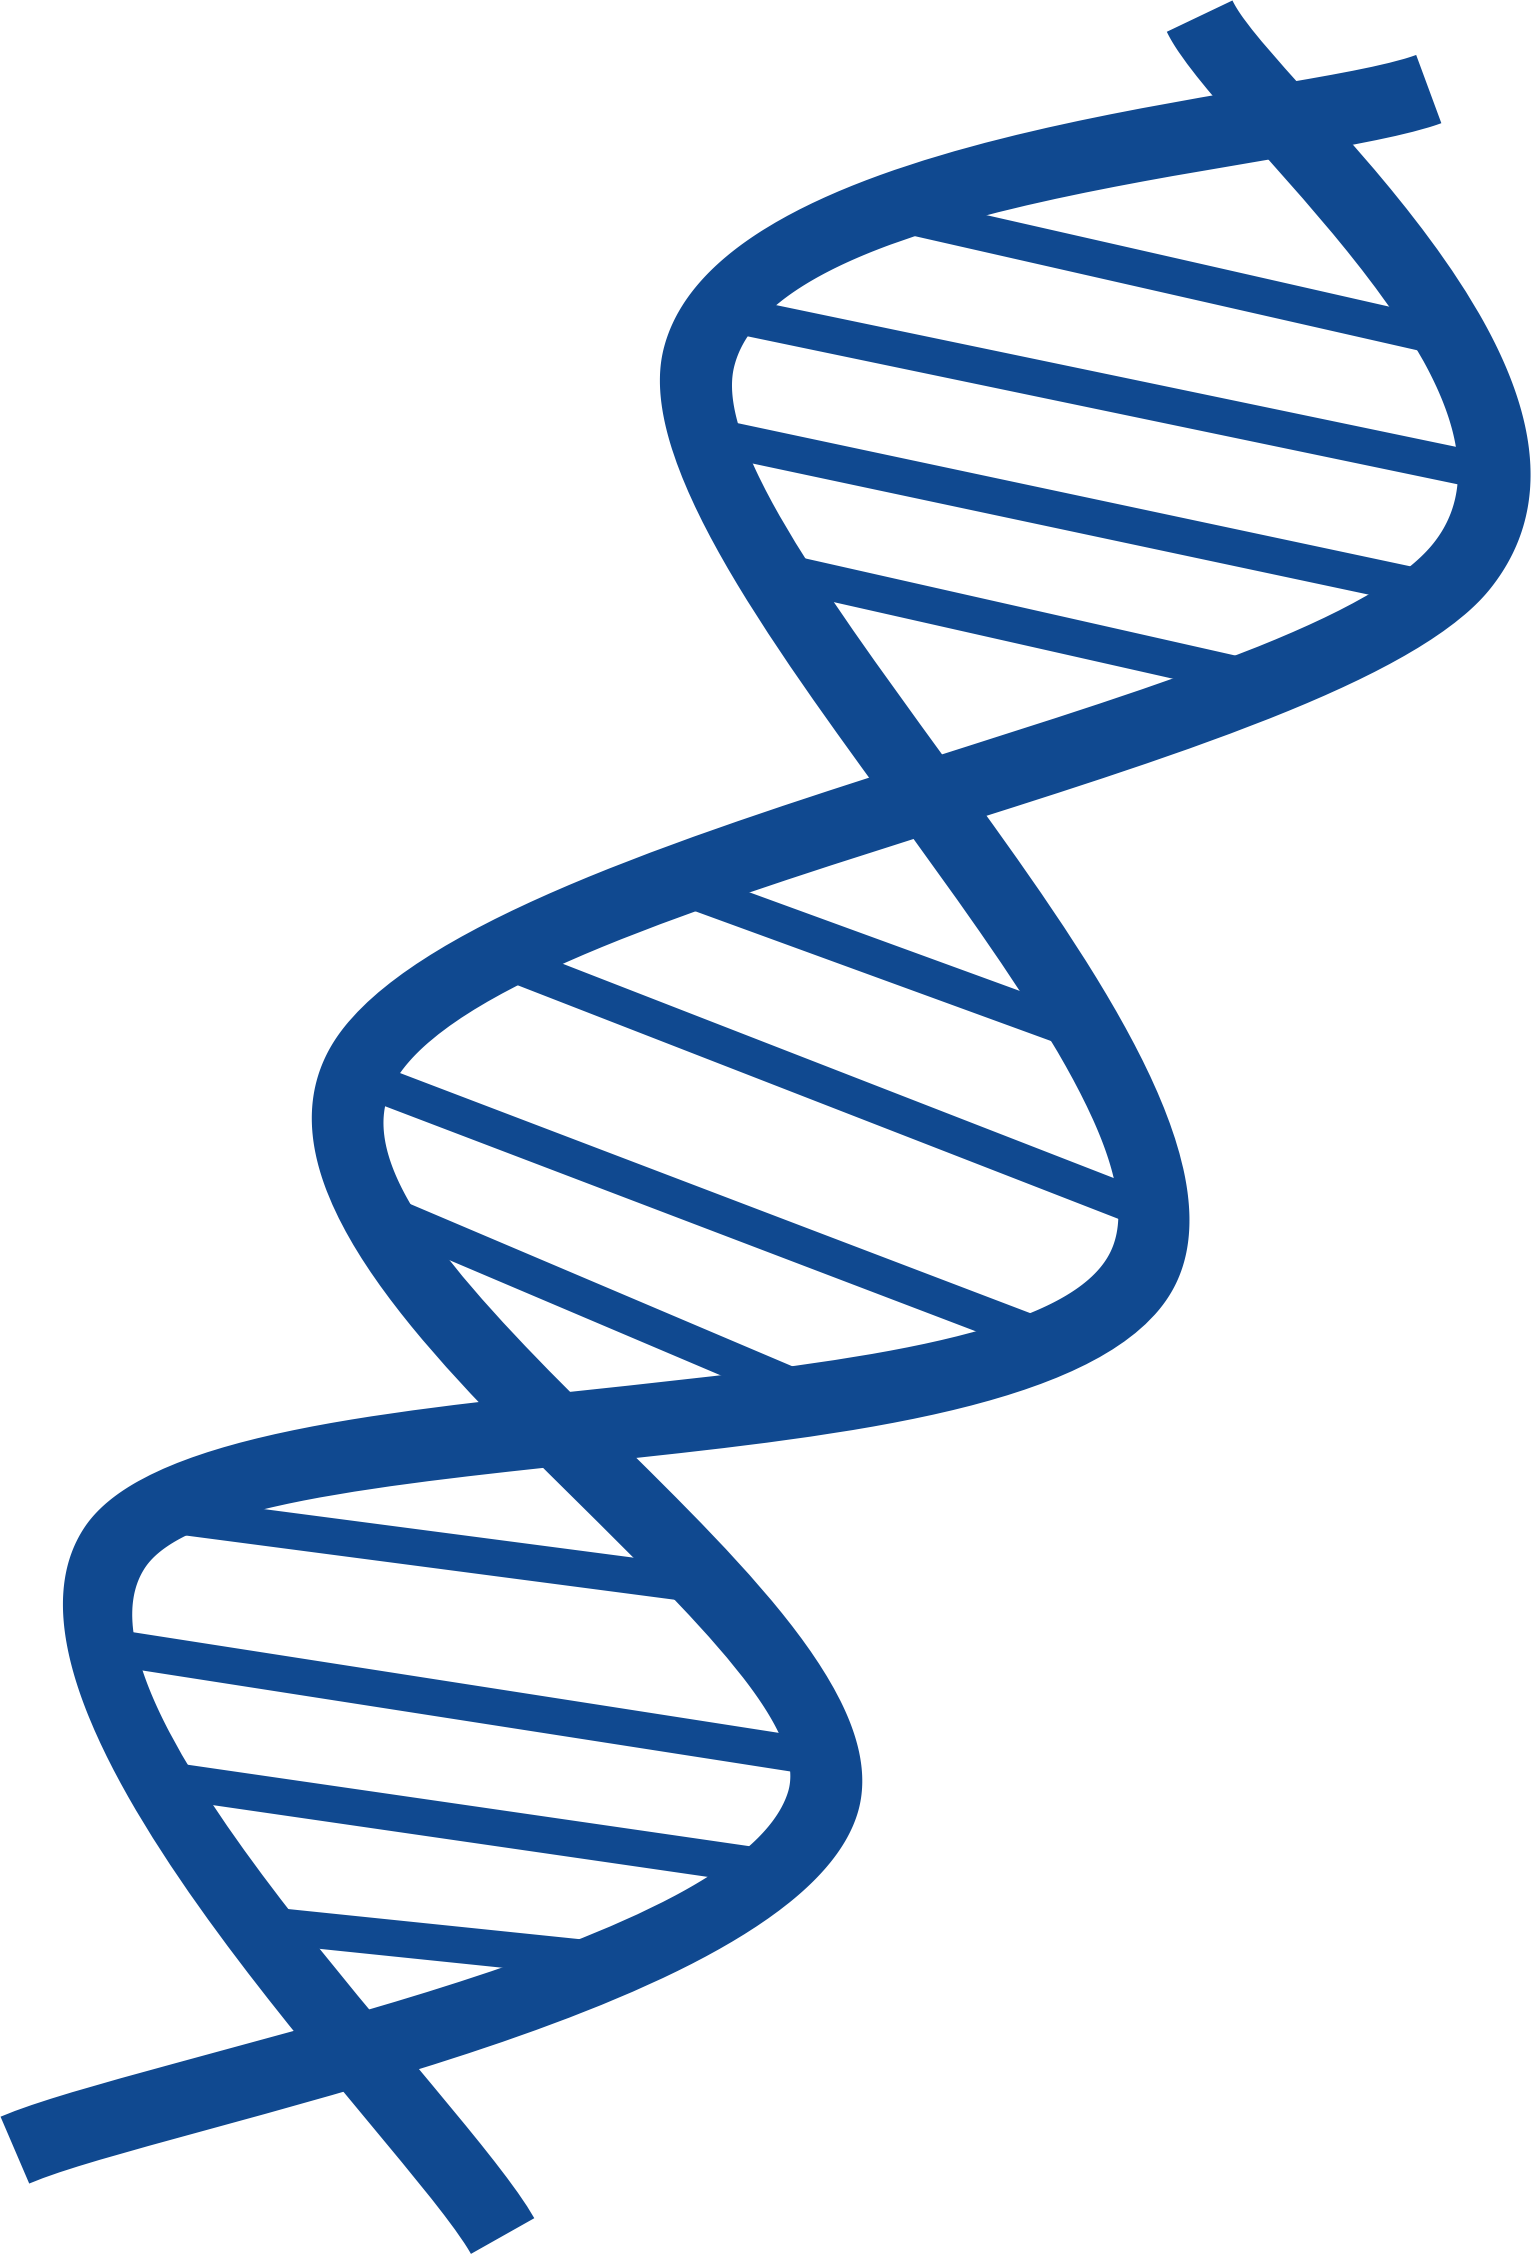 transparent dna hd white background